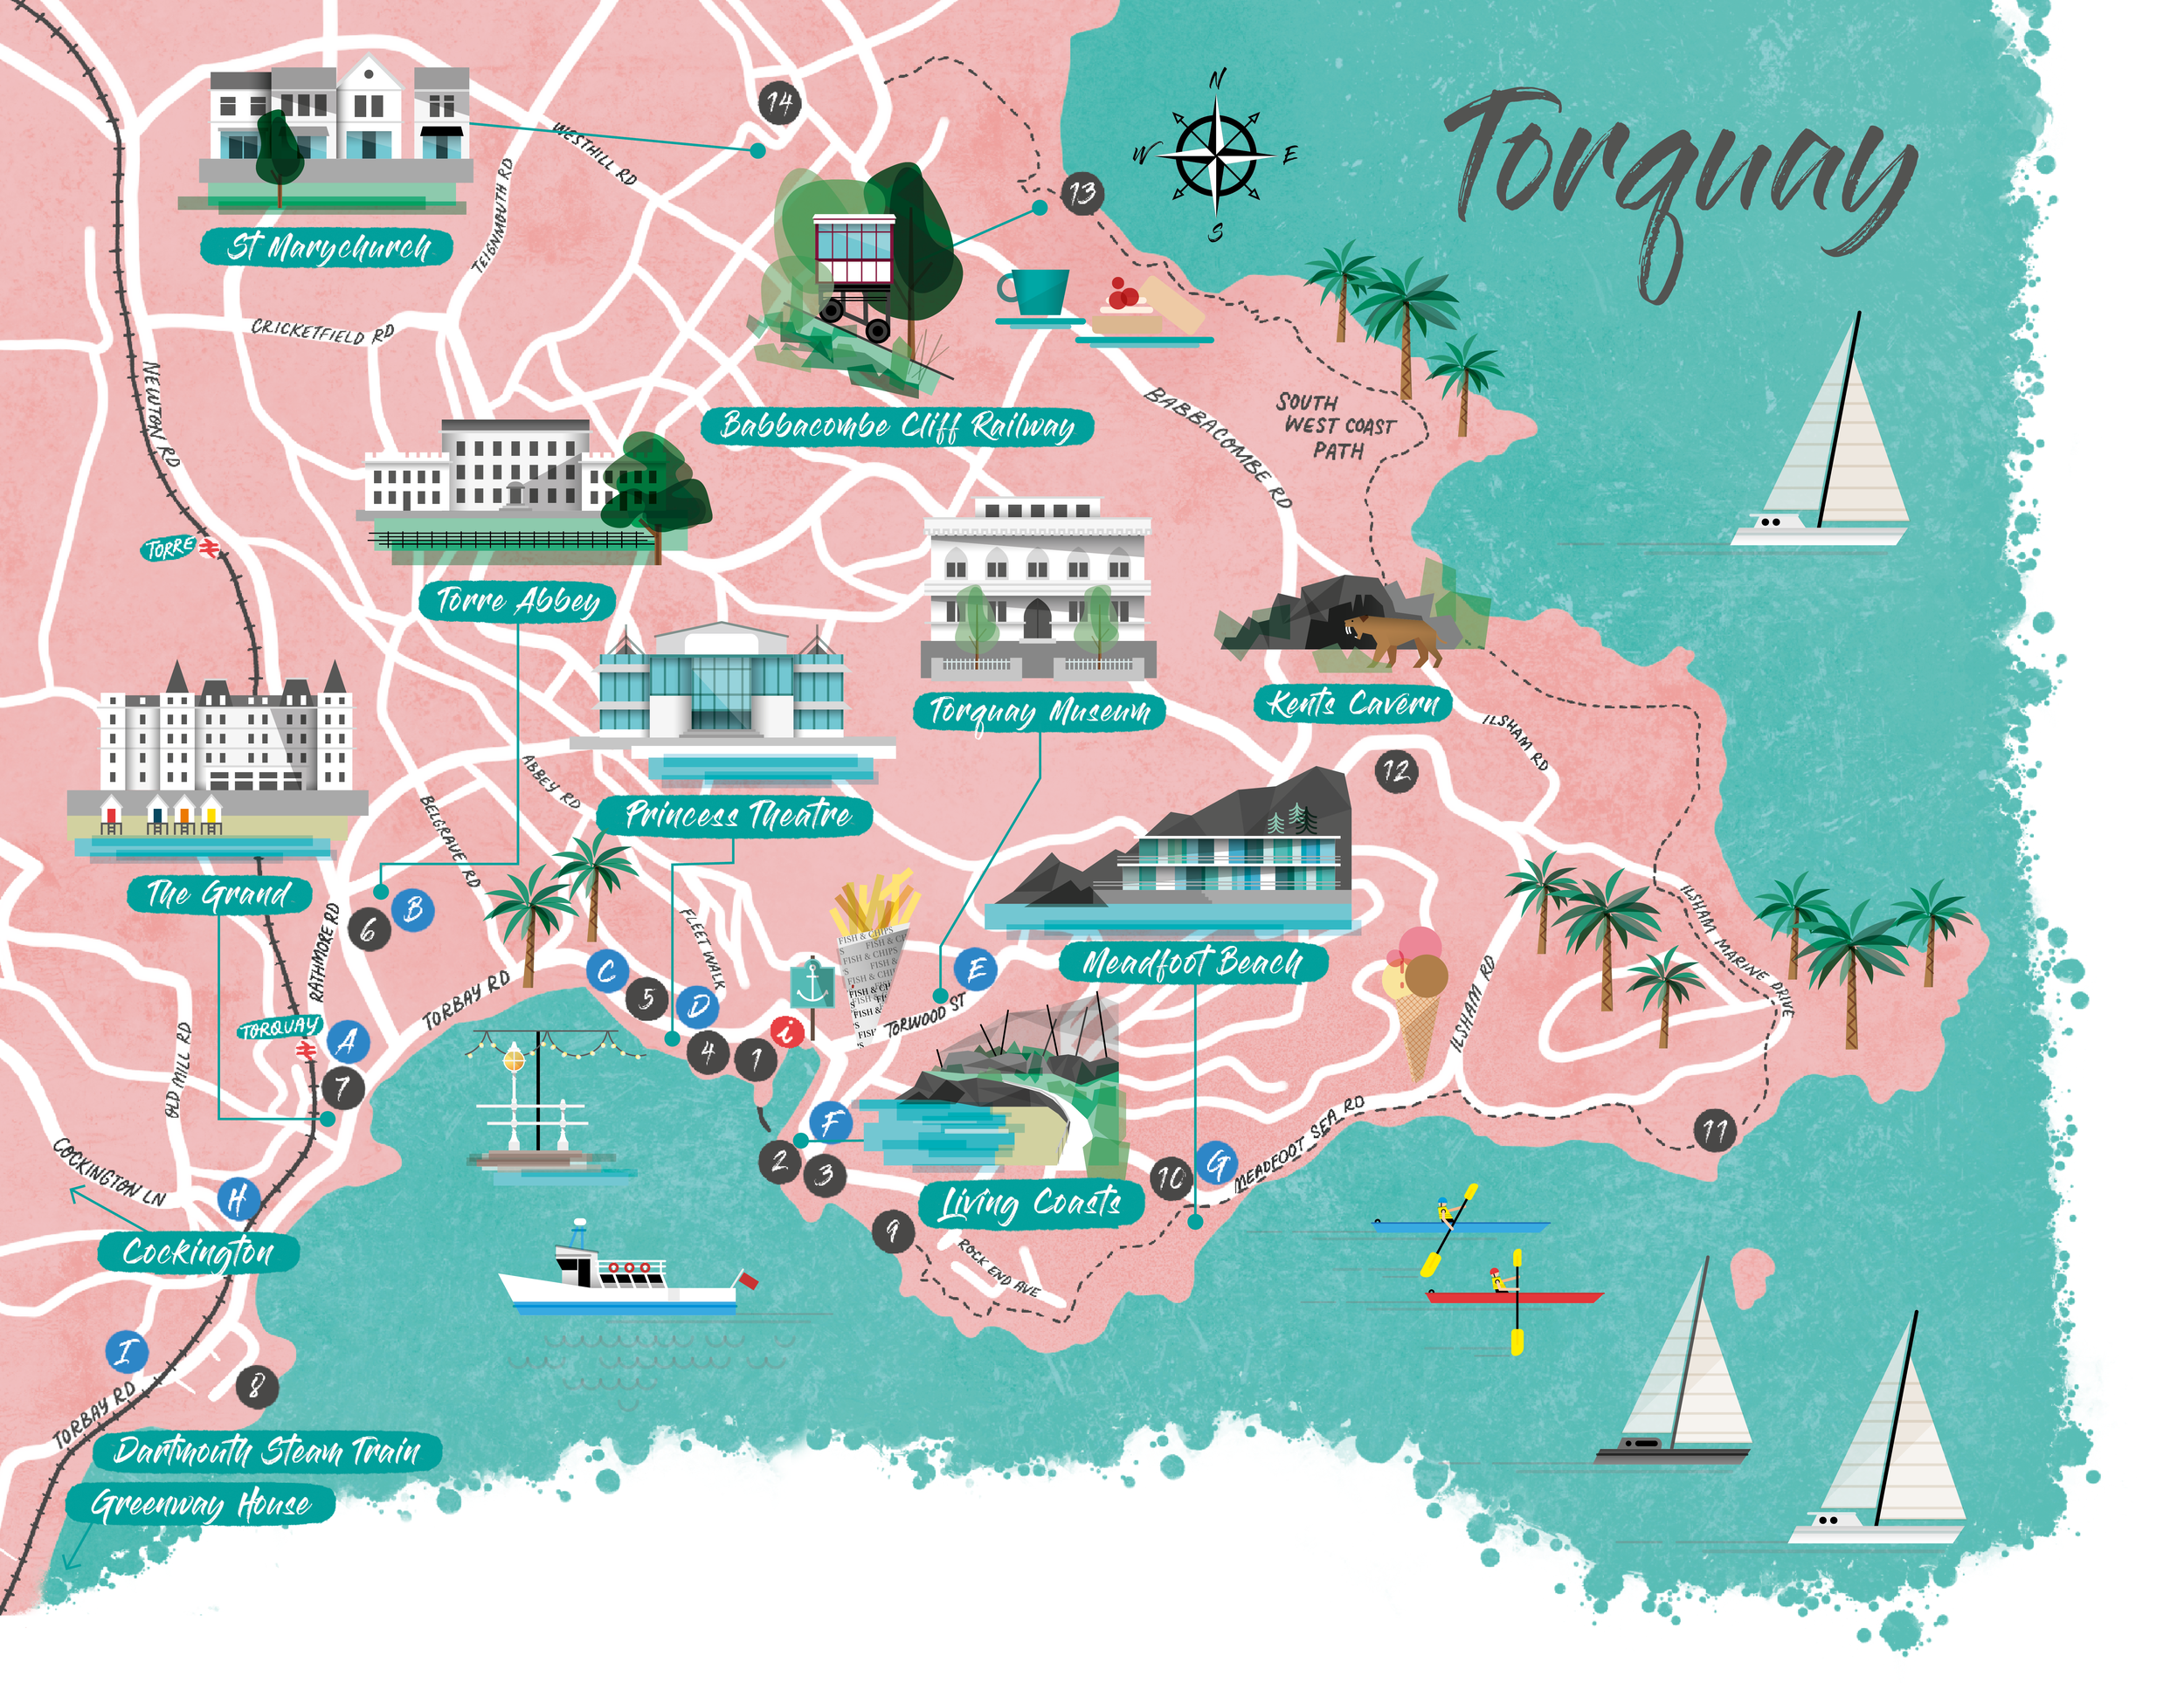 Writers on the Riviera trail map © 2019 Torbay Culture and English Riviera BID Company Credit: Illustrated map by Bert Fowler & Sophia Slater.